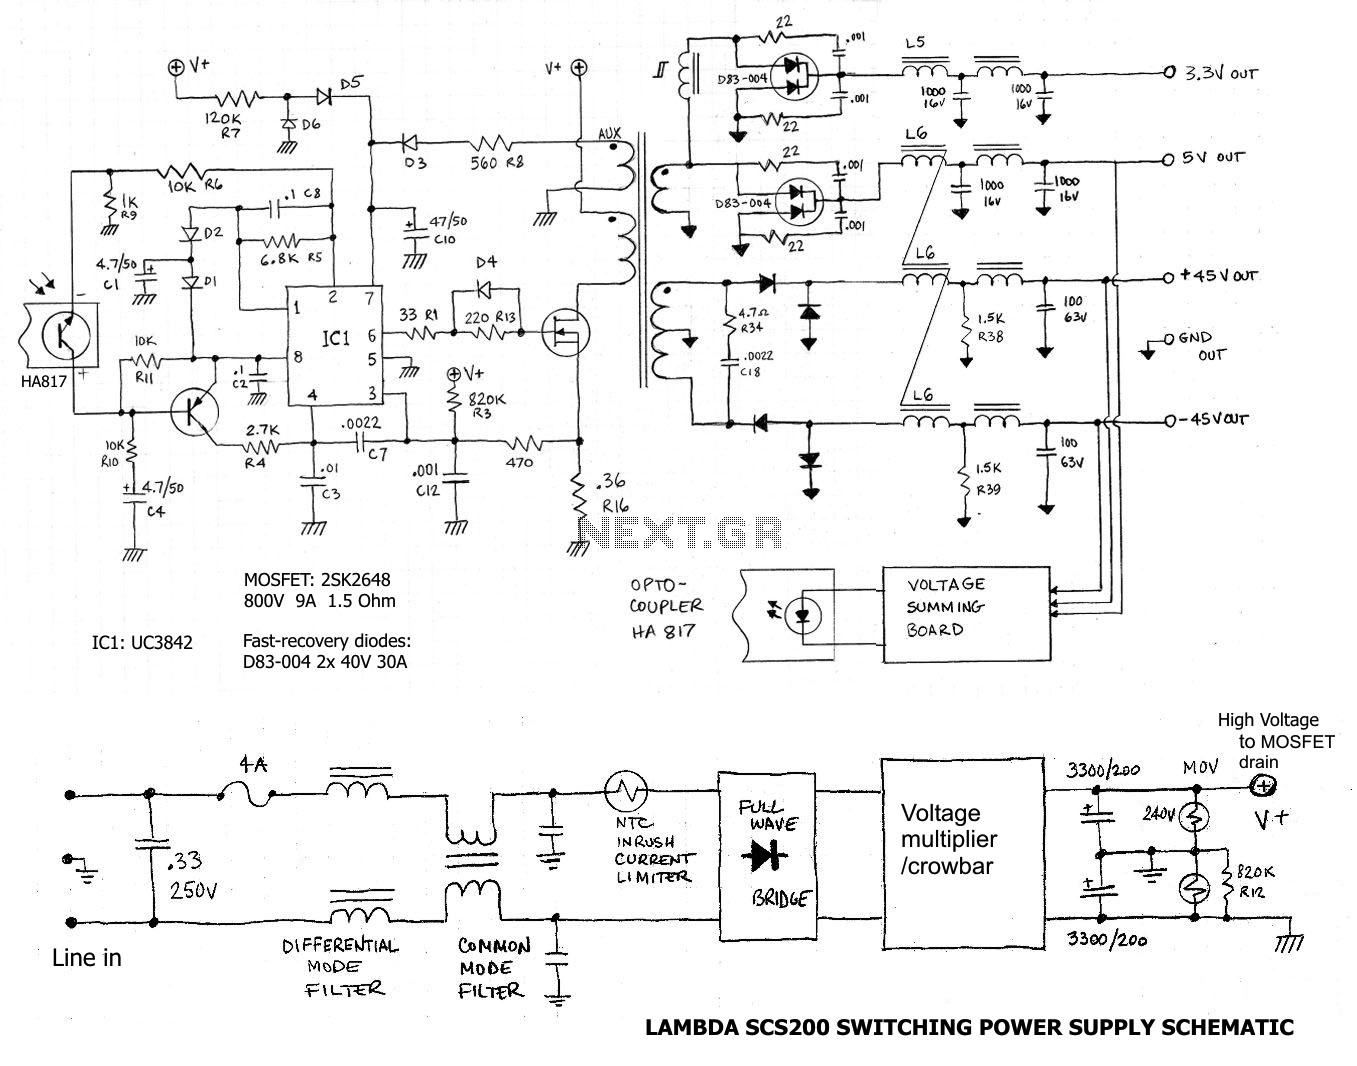 Fisher Solenoid Wiring Diagram Fisher Plow Solenoid Problems With Regard To Fisher Snow Plow Wiring Diagram moreover Dd Itm Nitrous Stage further Snowdogg Plow Wiring Diagram Gallery Of Snowdogg Snow Plow Wiring Diagram H also Boss Snow Plow Wiring Harness Diagram Details Western Snow Plow likewise . on original minute mount wiring relay style